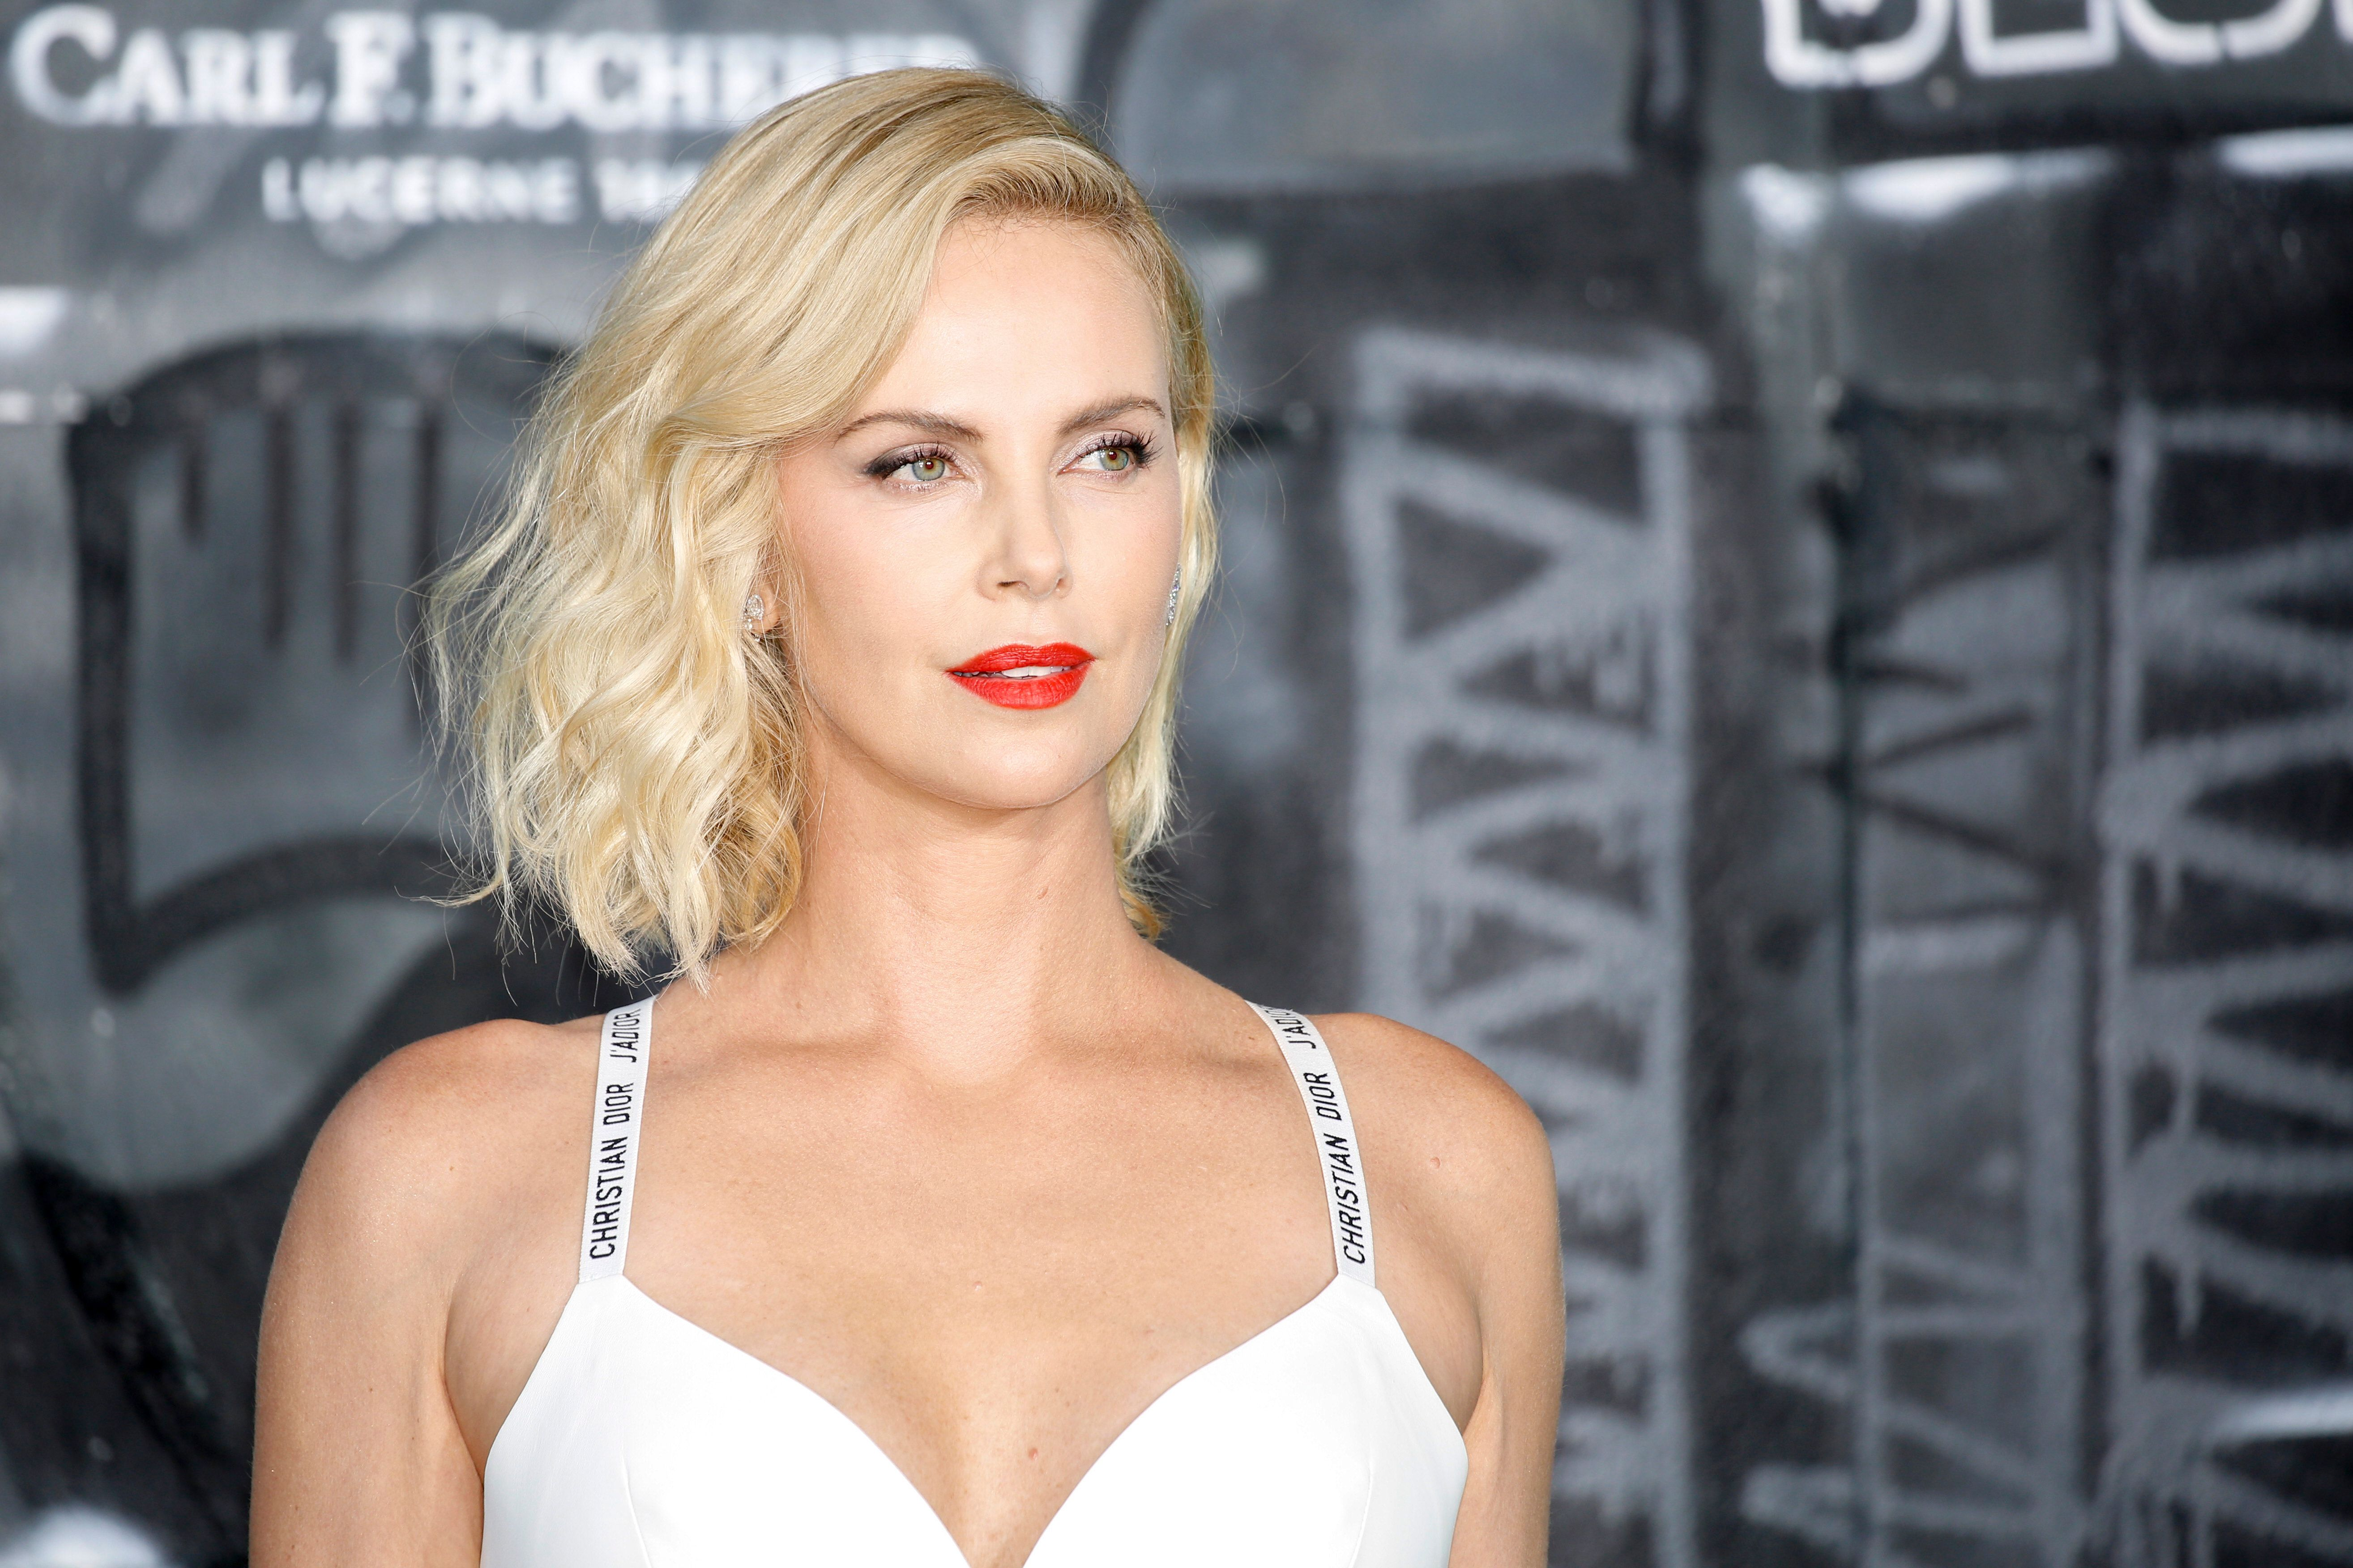 Charlize Theron attends the 'Atomic Blonde' World Premiere at Stage Theater on July 17, 2017 in Berlin, Germany.